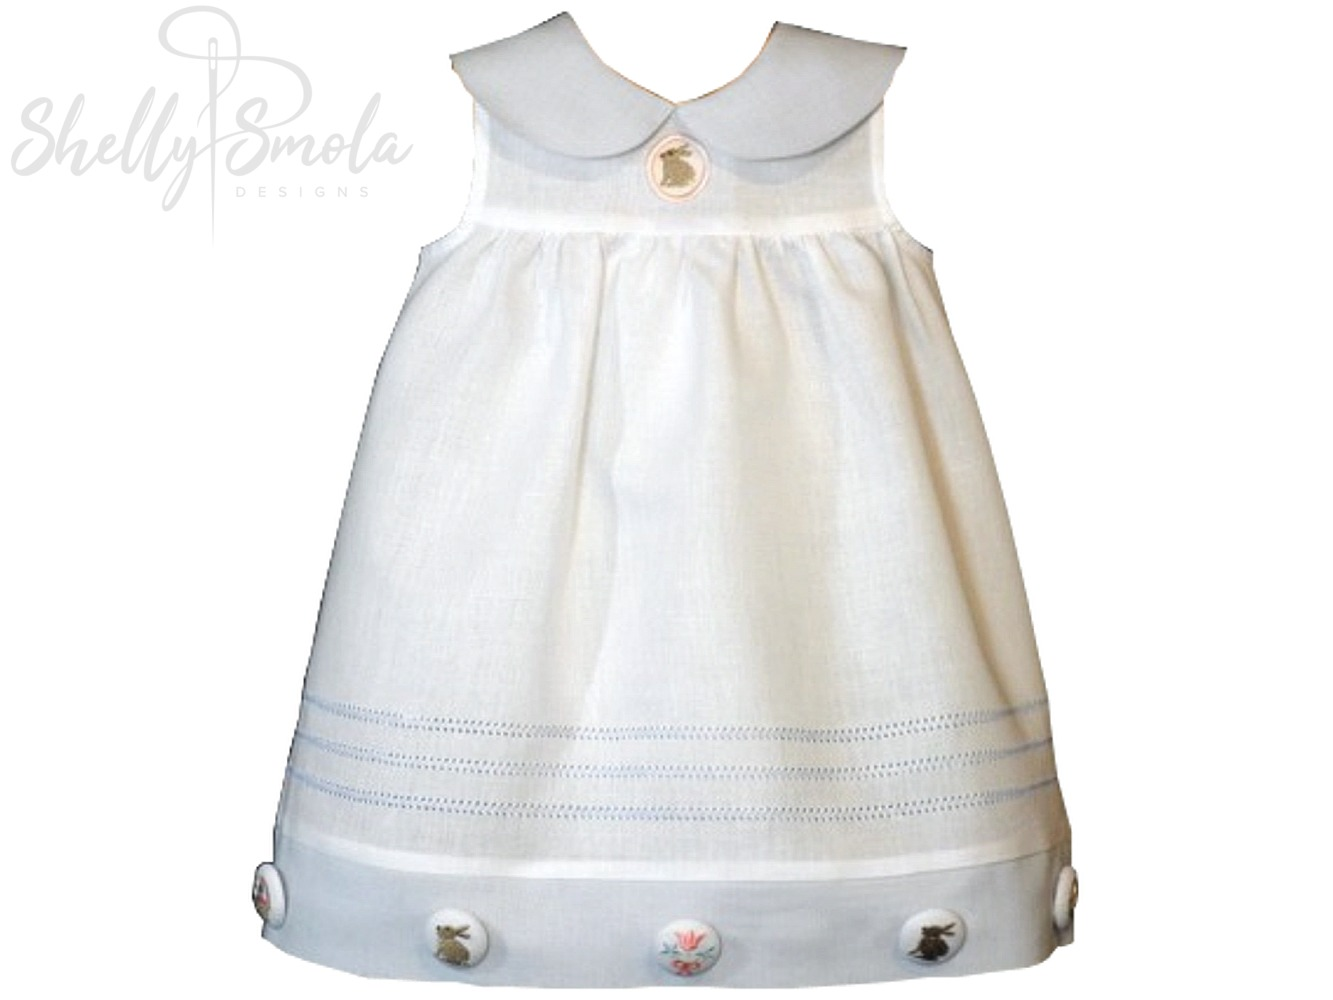 Spring Holiday Button Cover Dress by Shelly Smola